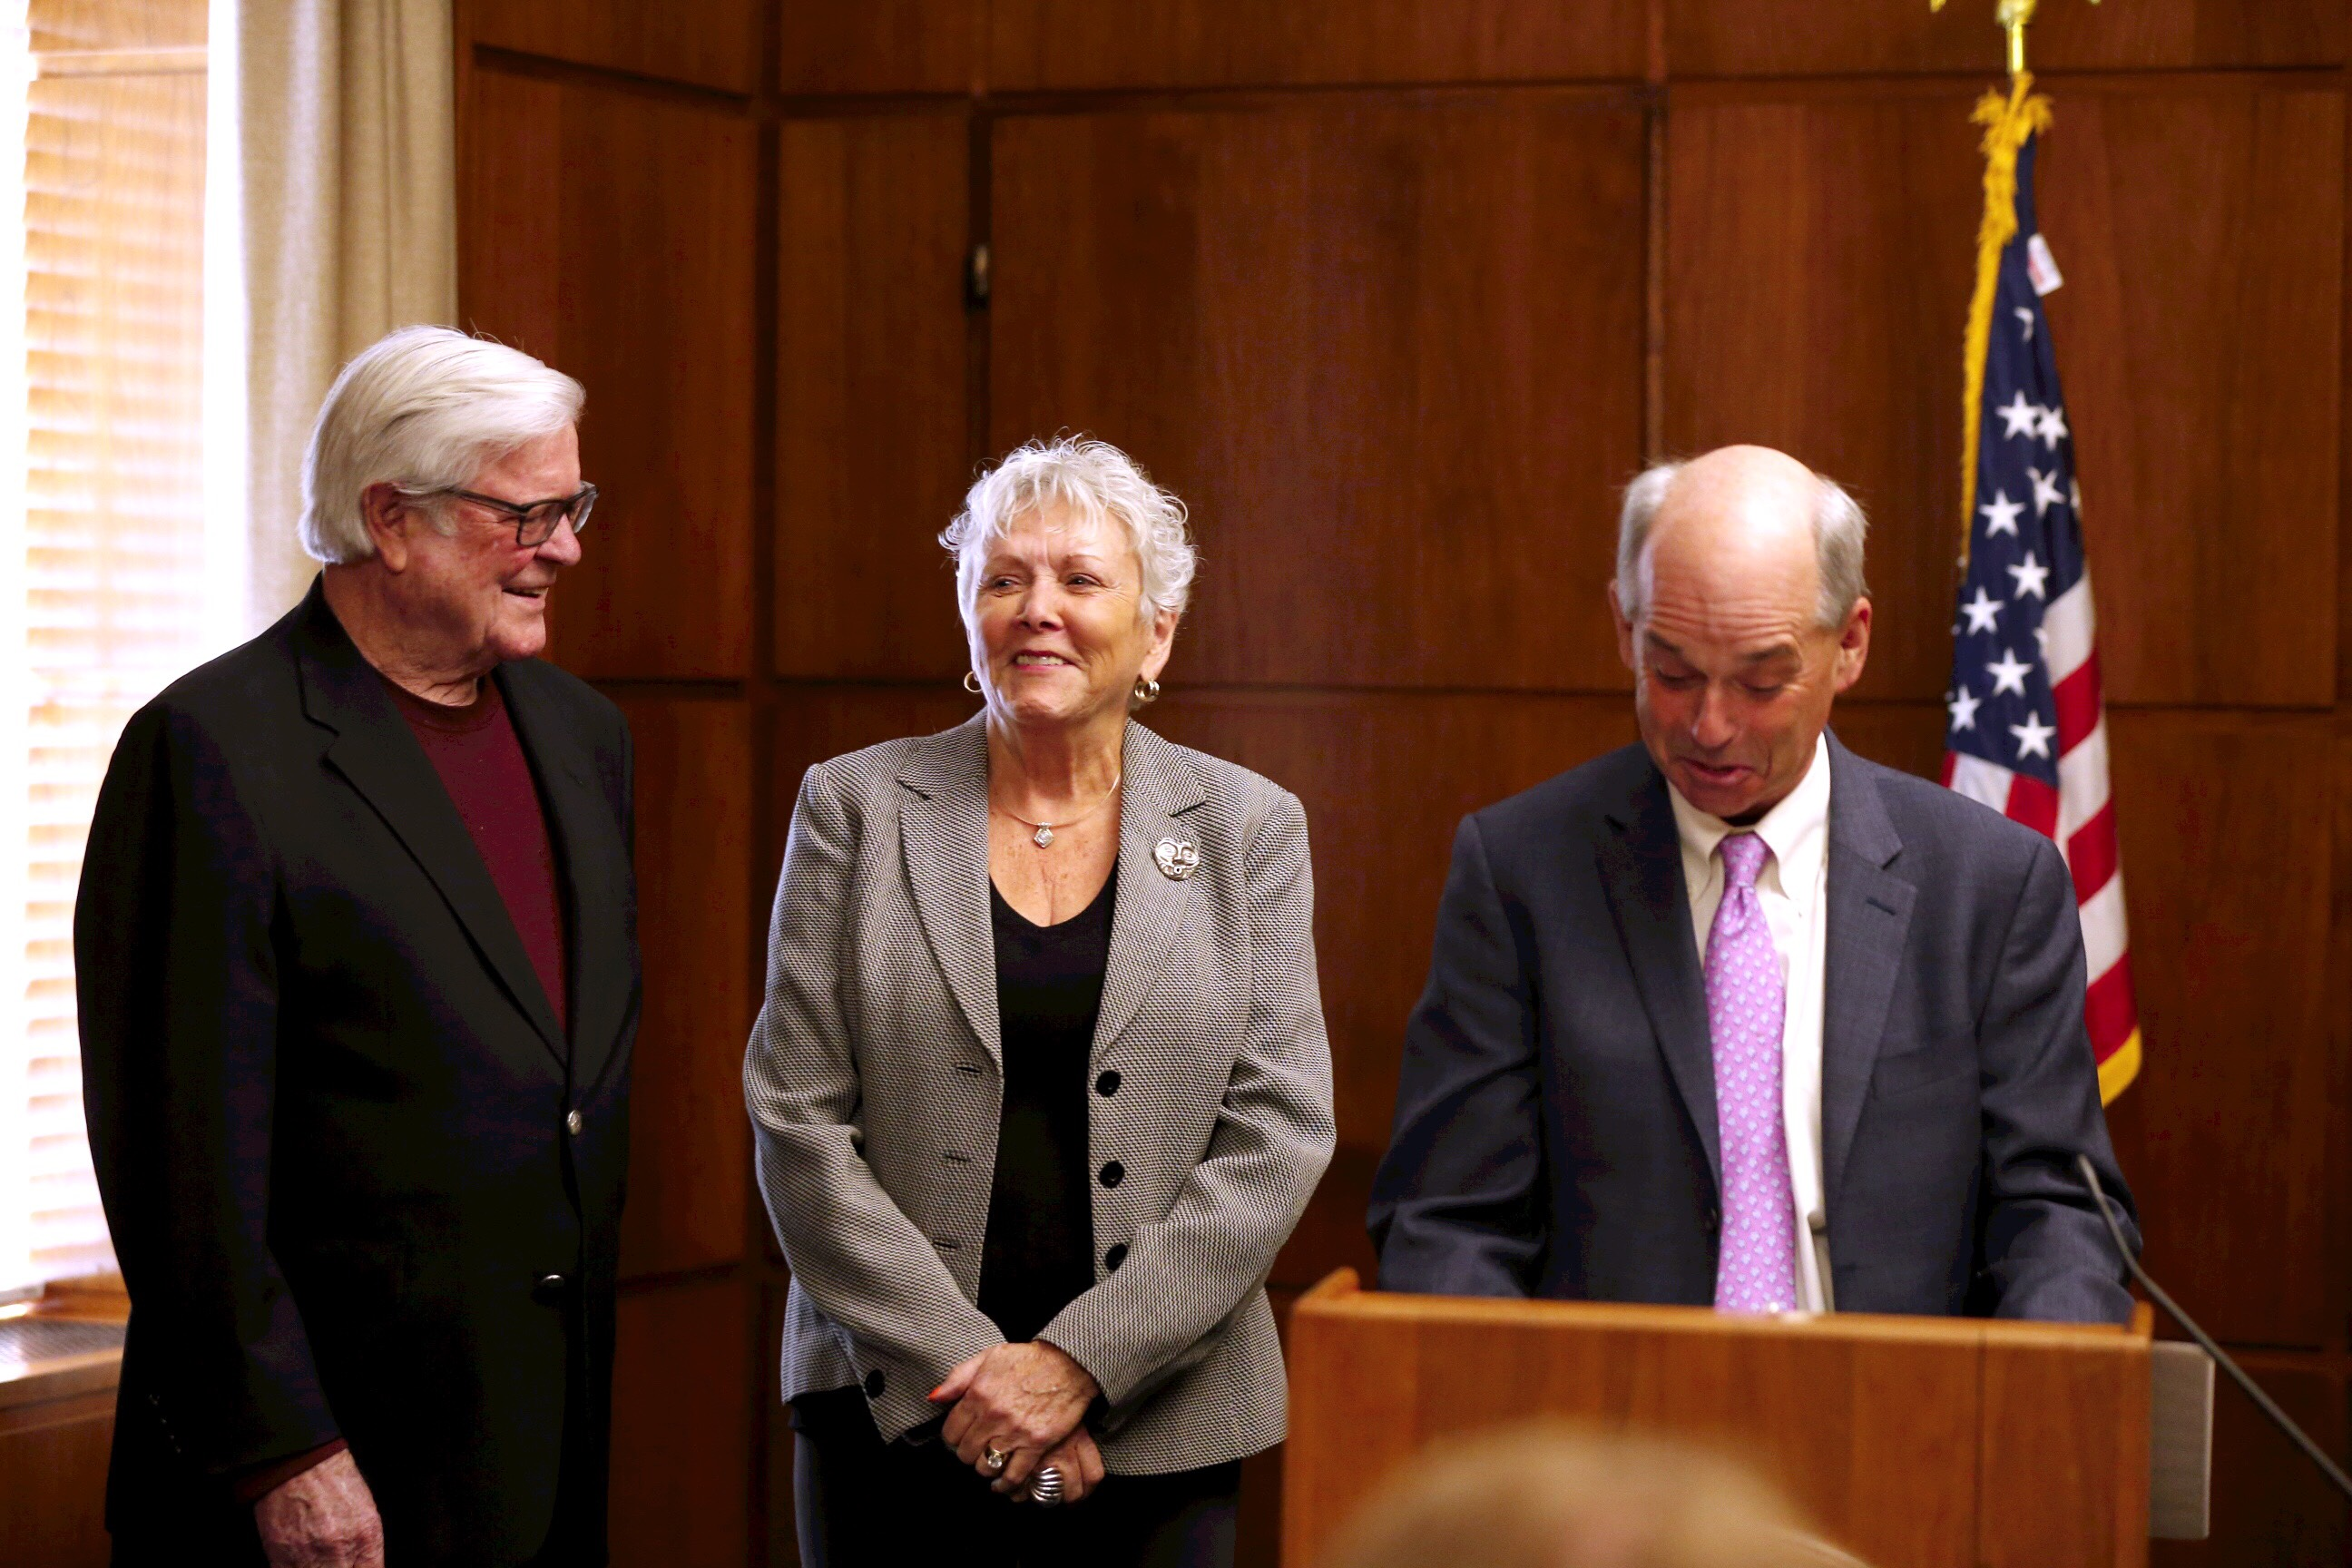 Don't hire your relatives, Oregon ethics watchdog tells secretary of state